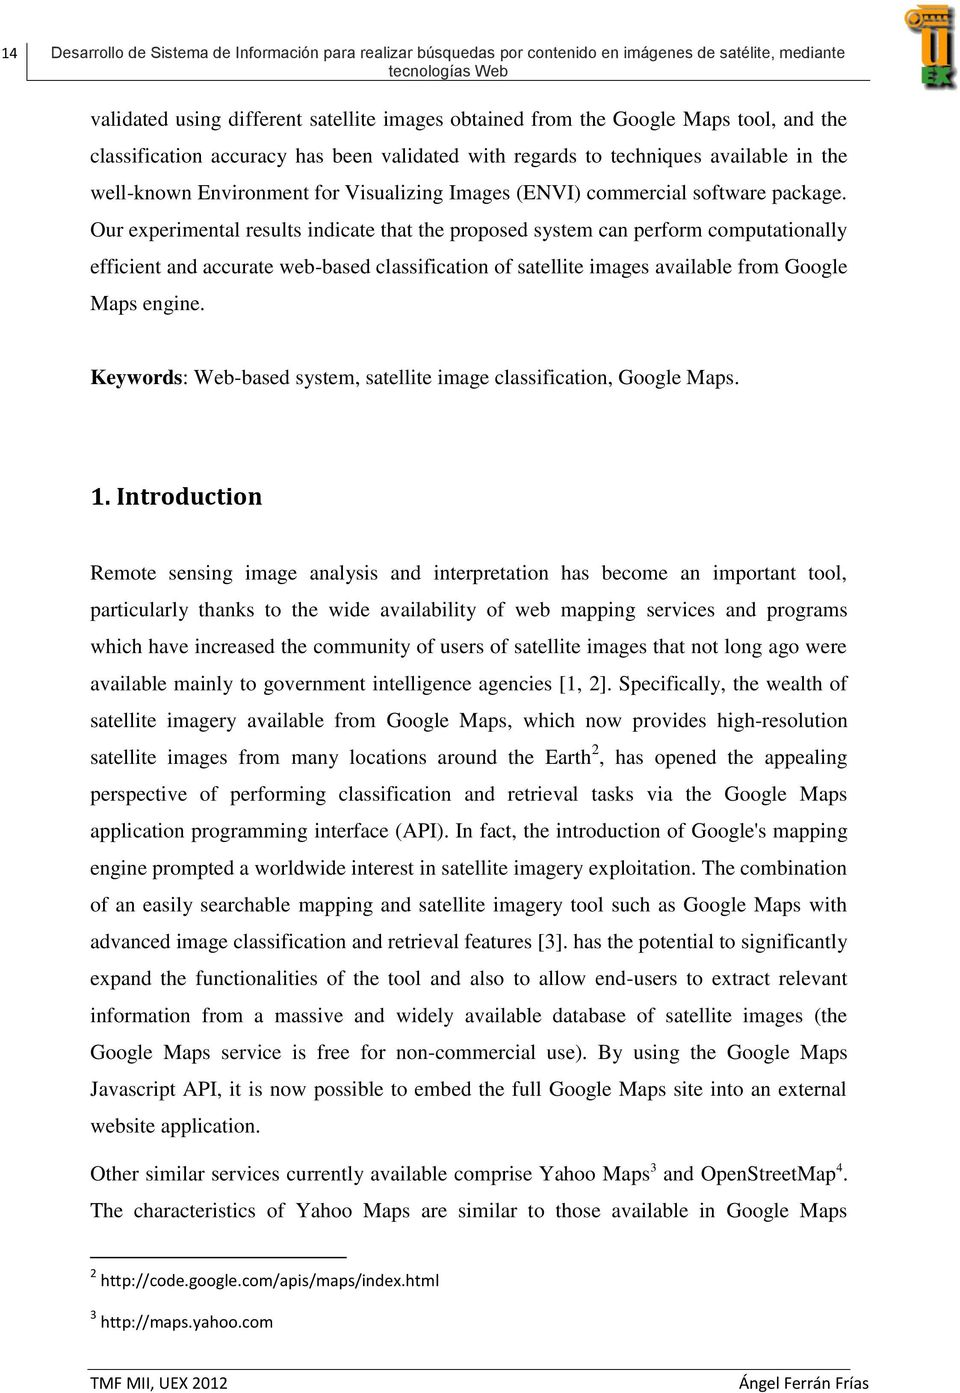 Our experimental results indicate that the proposed system can perform computationally efficient and accurate web-based classification of satellite images available from Google Maps engine.